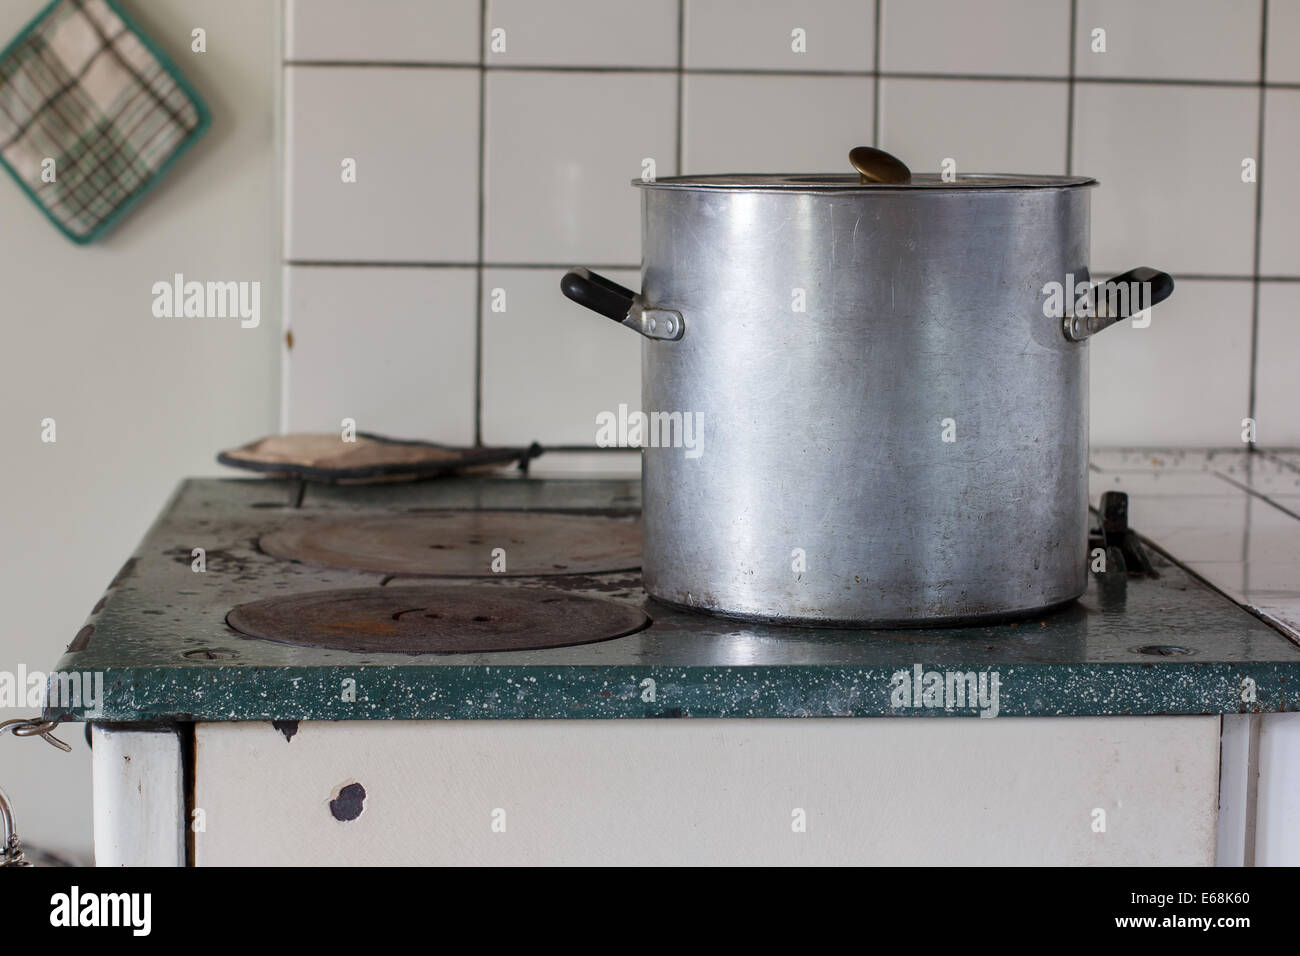 Old stove with a pot on it - Stock Image